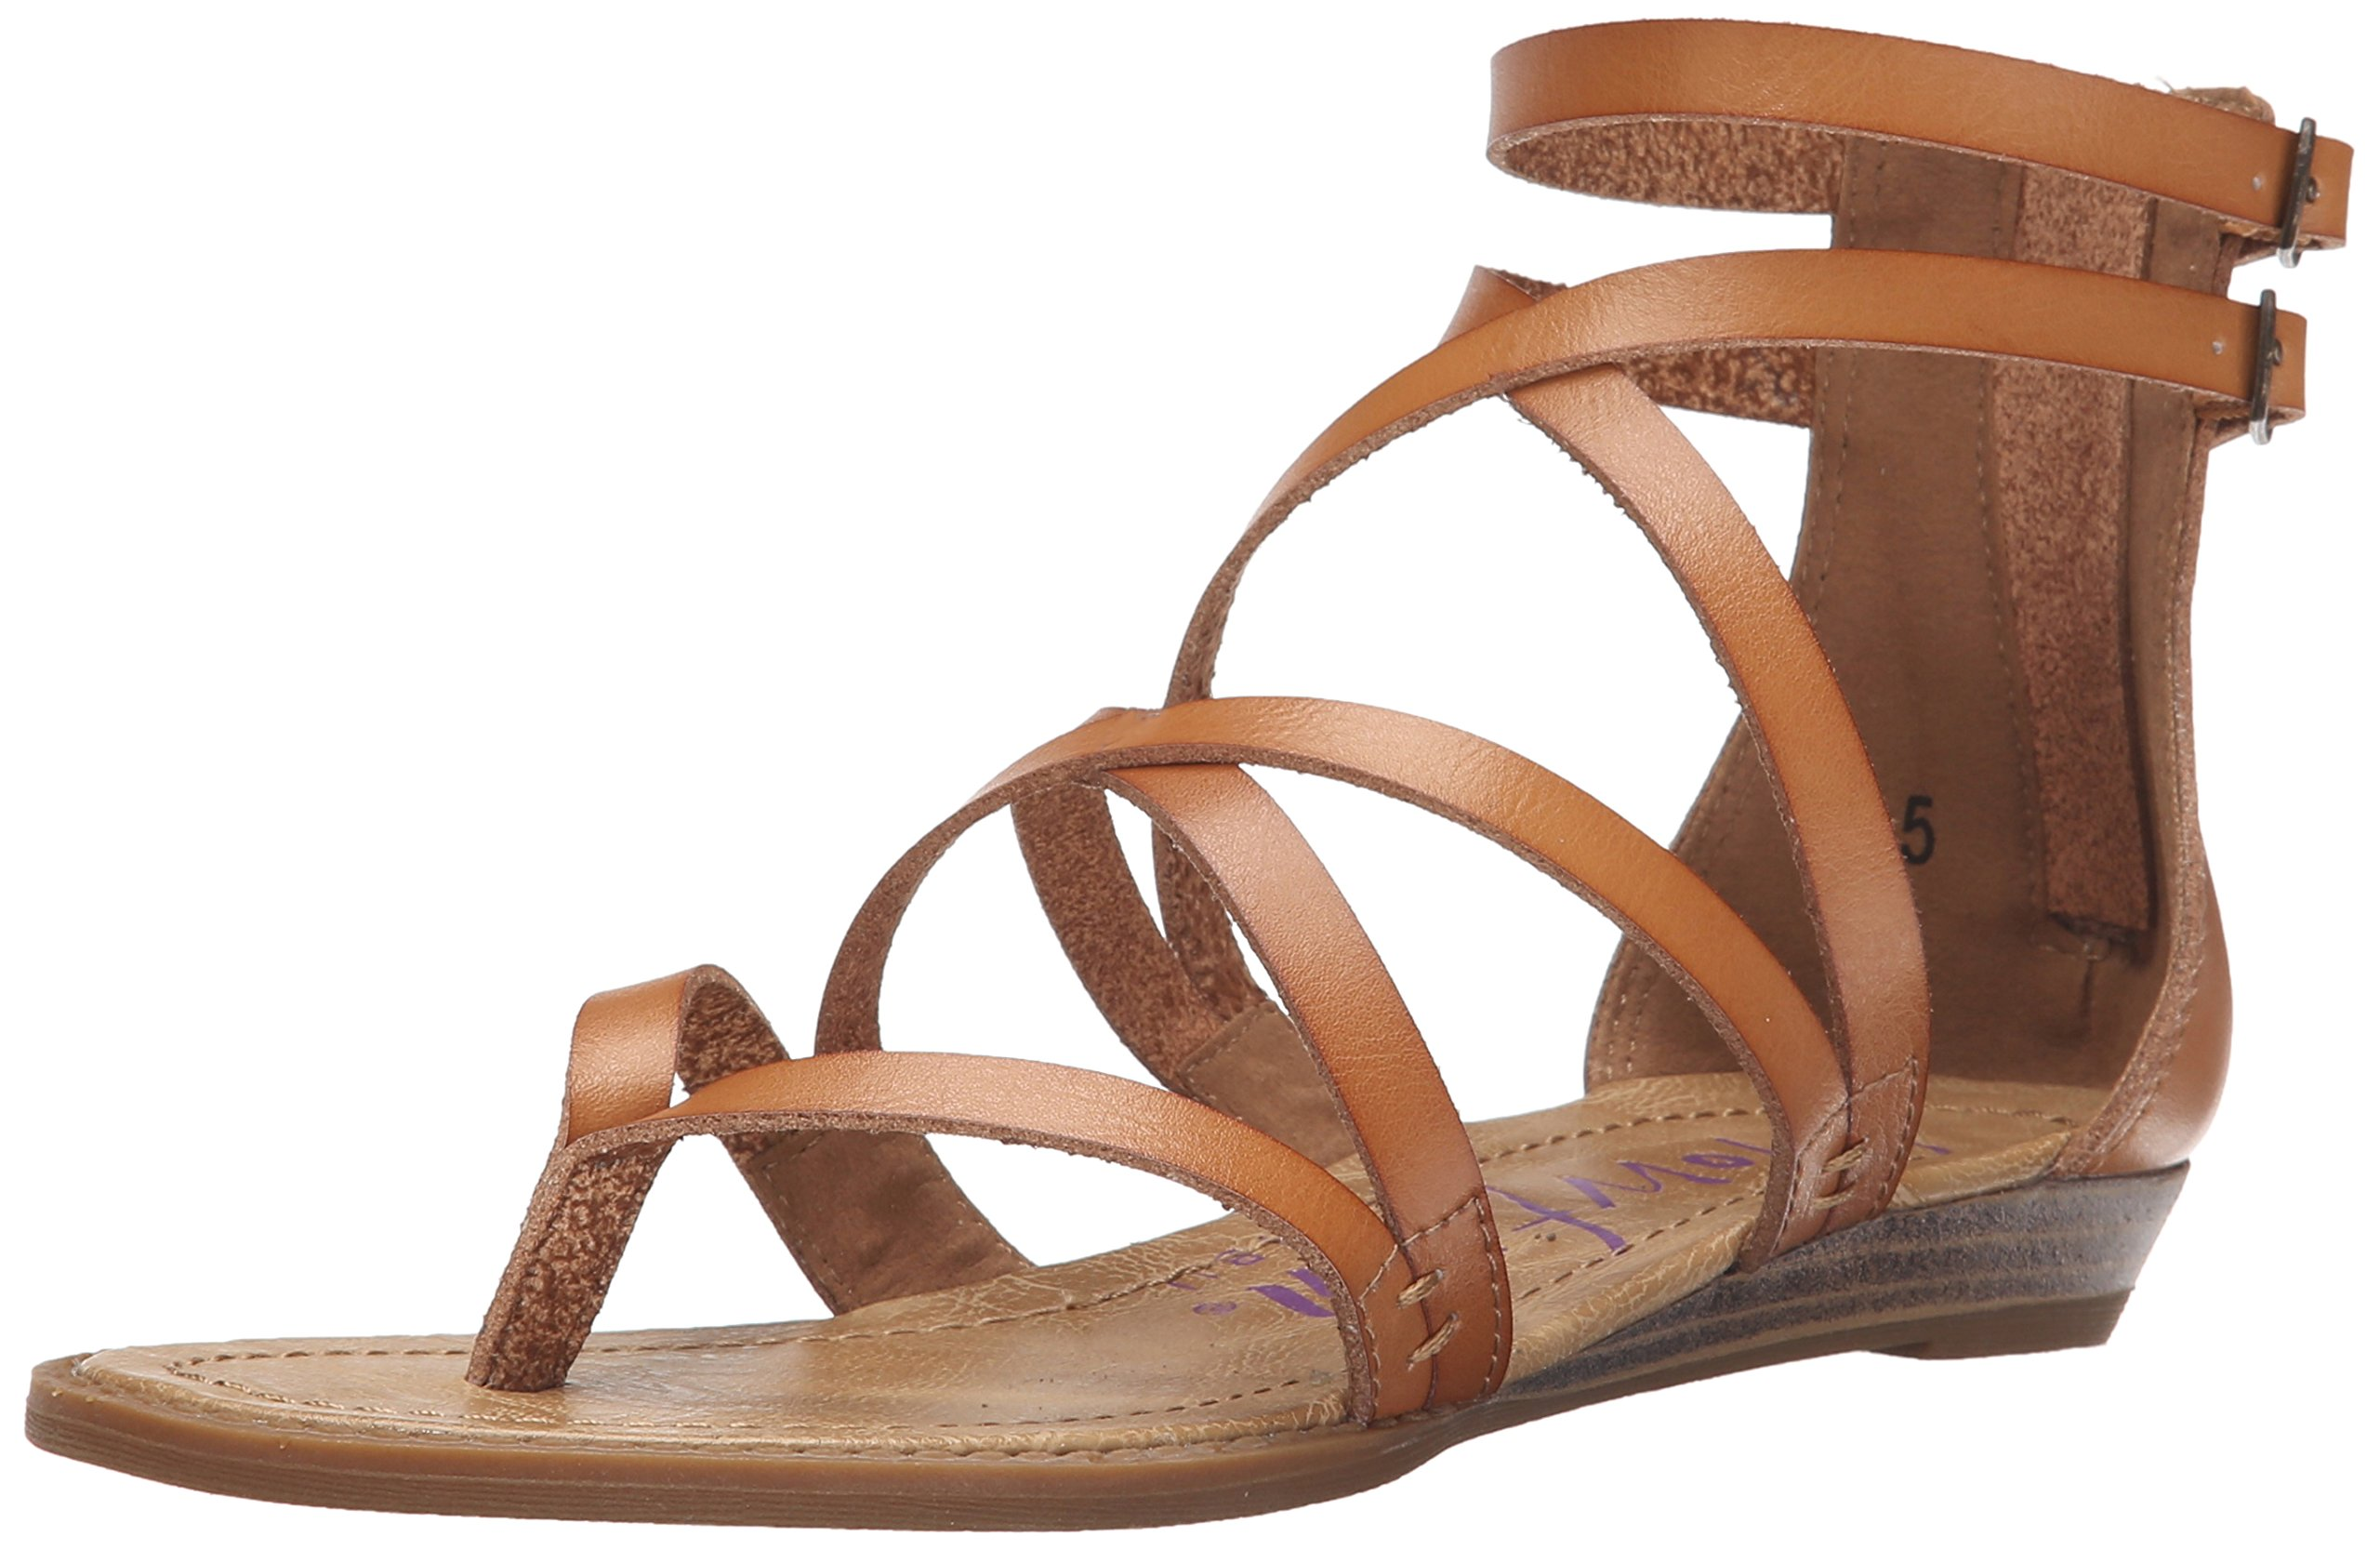 Blowfish Women's Bungalow Sandal, Sand, 7.5 M US